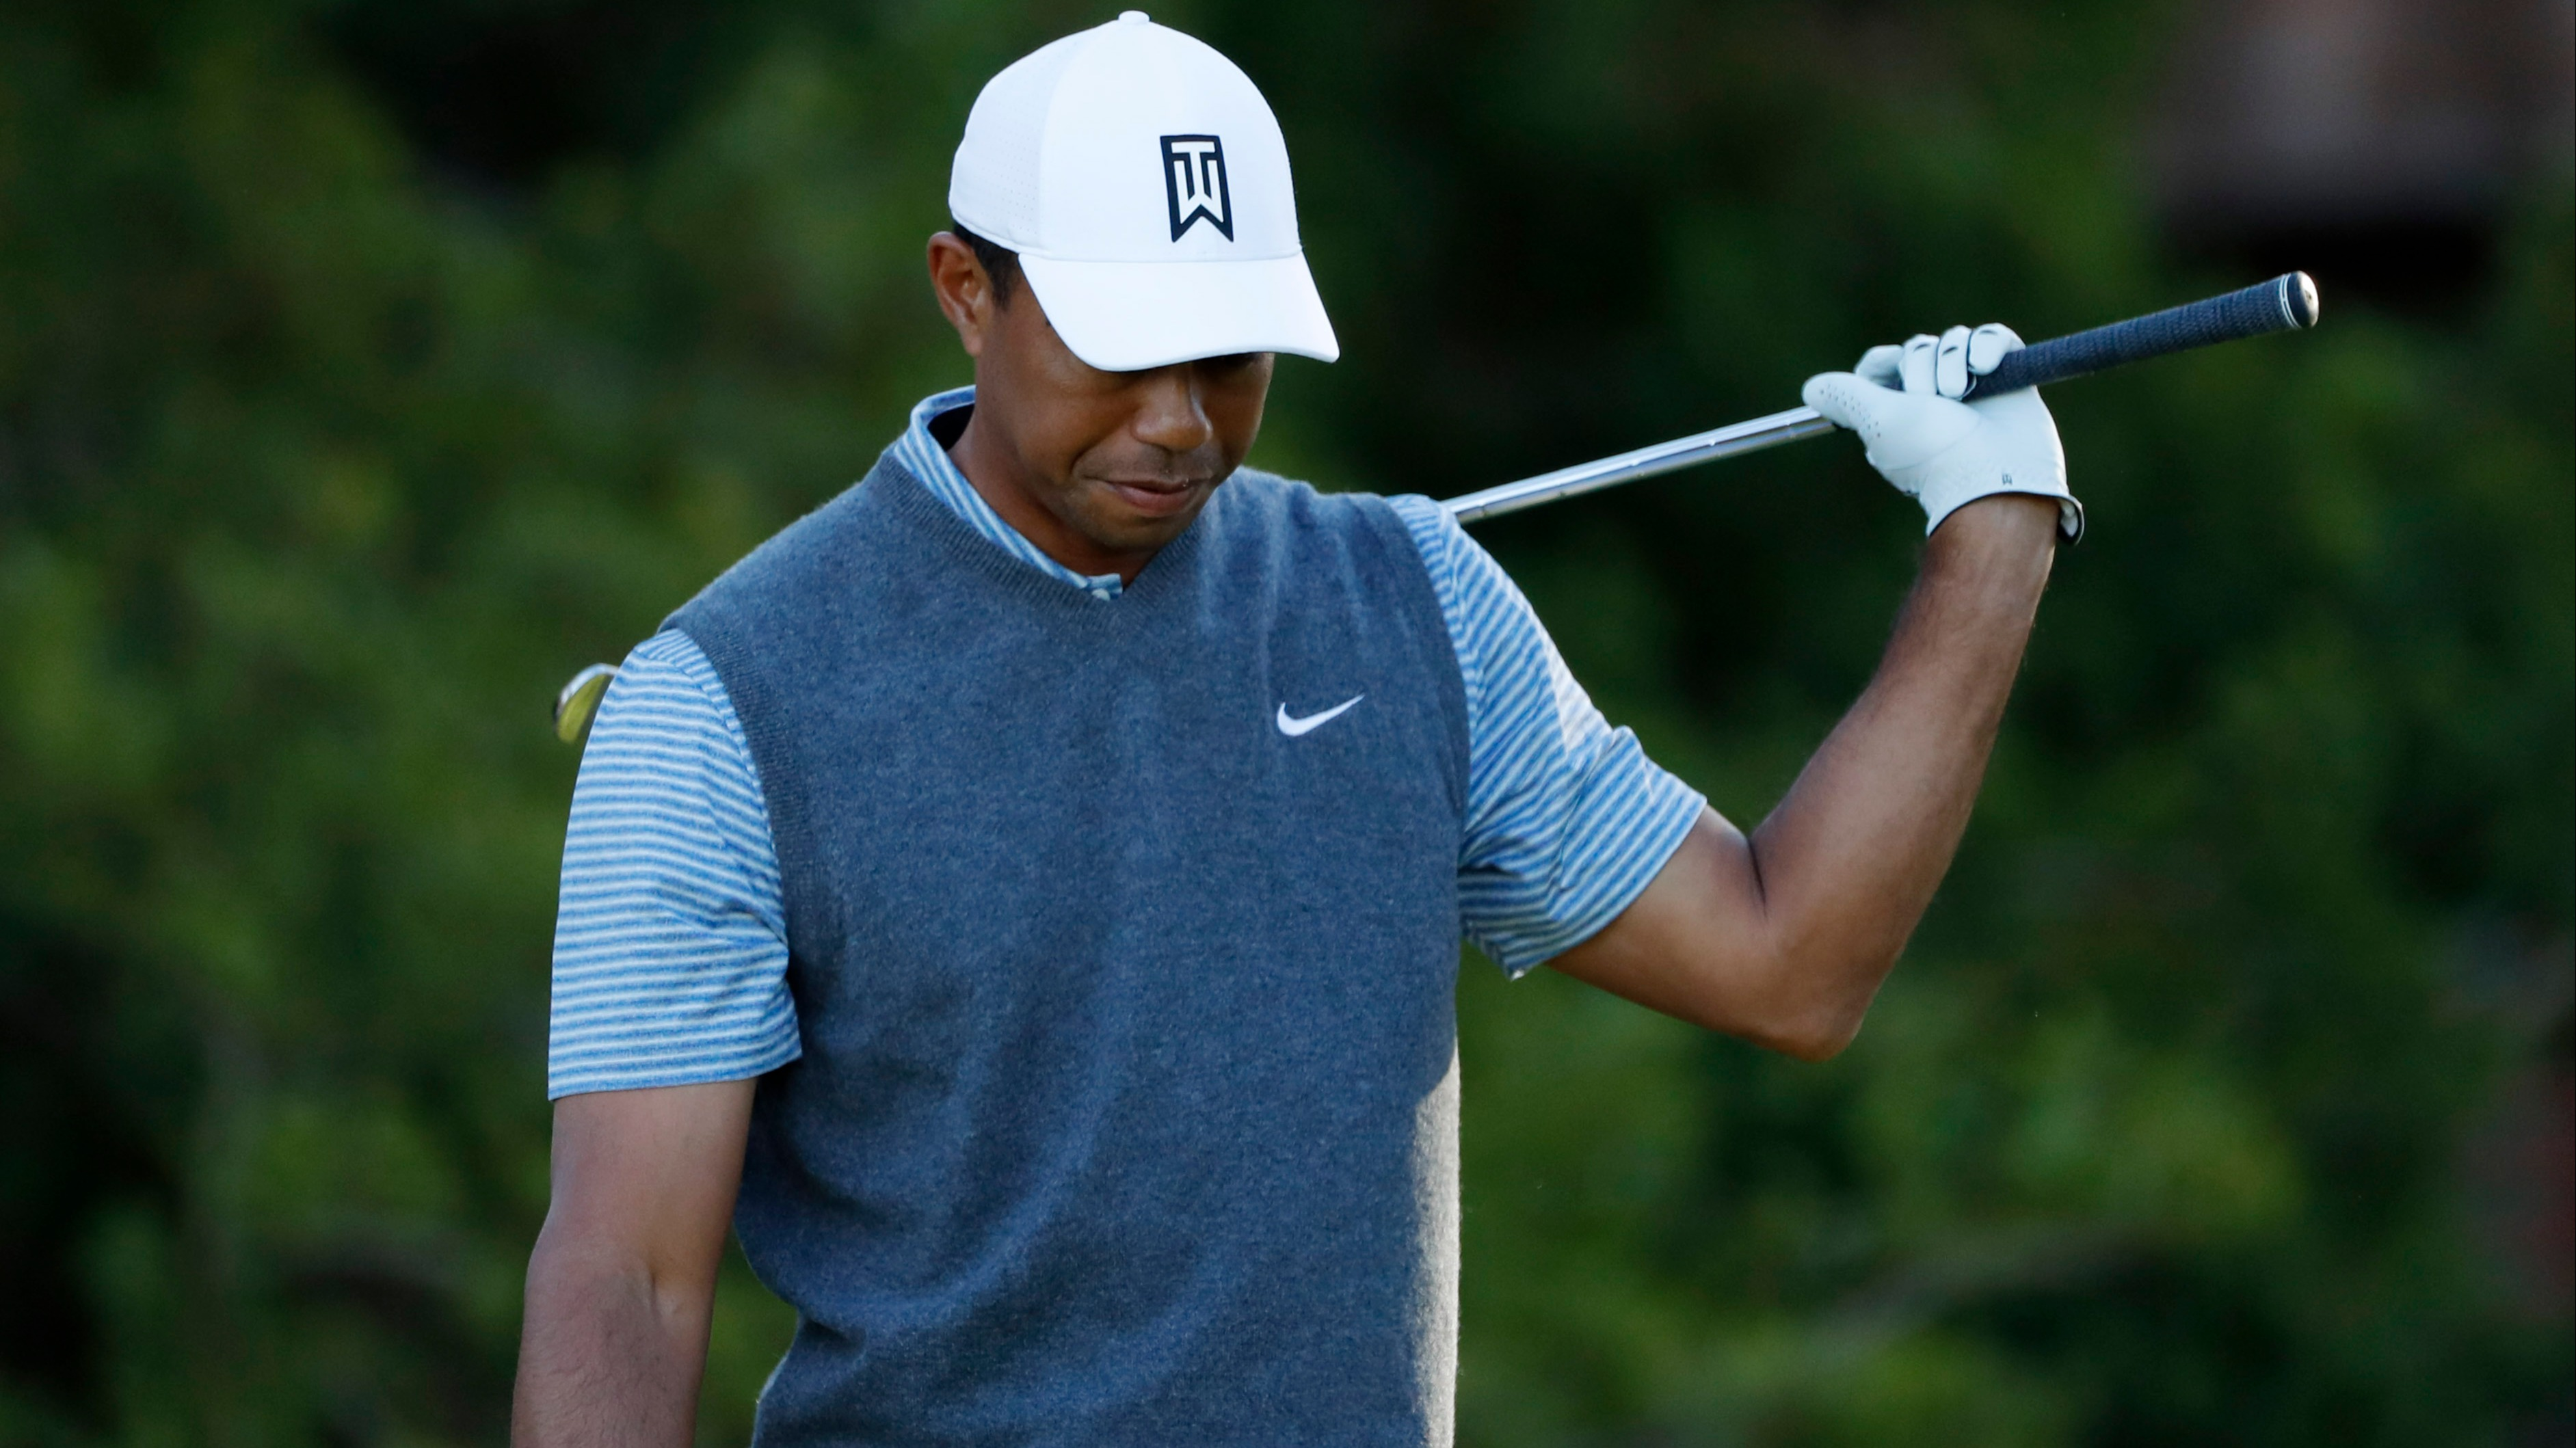 Big bet on tiger woods bovada sports betting lines